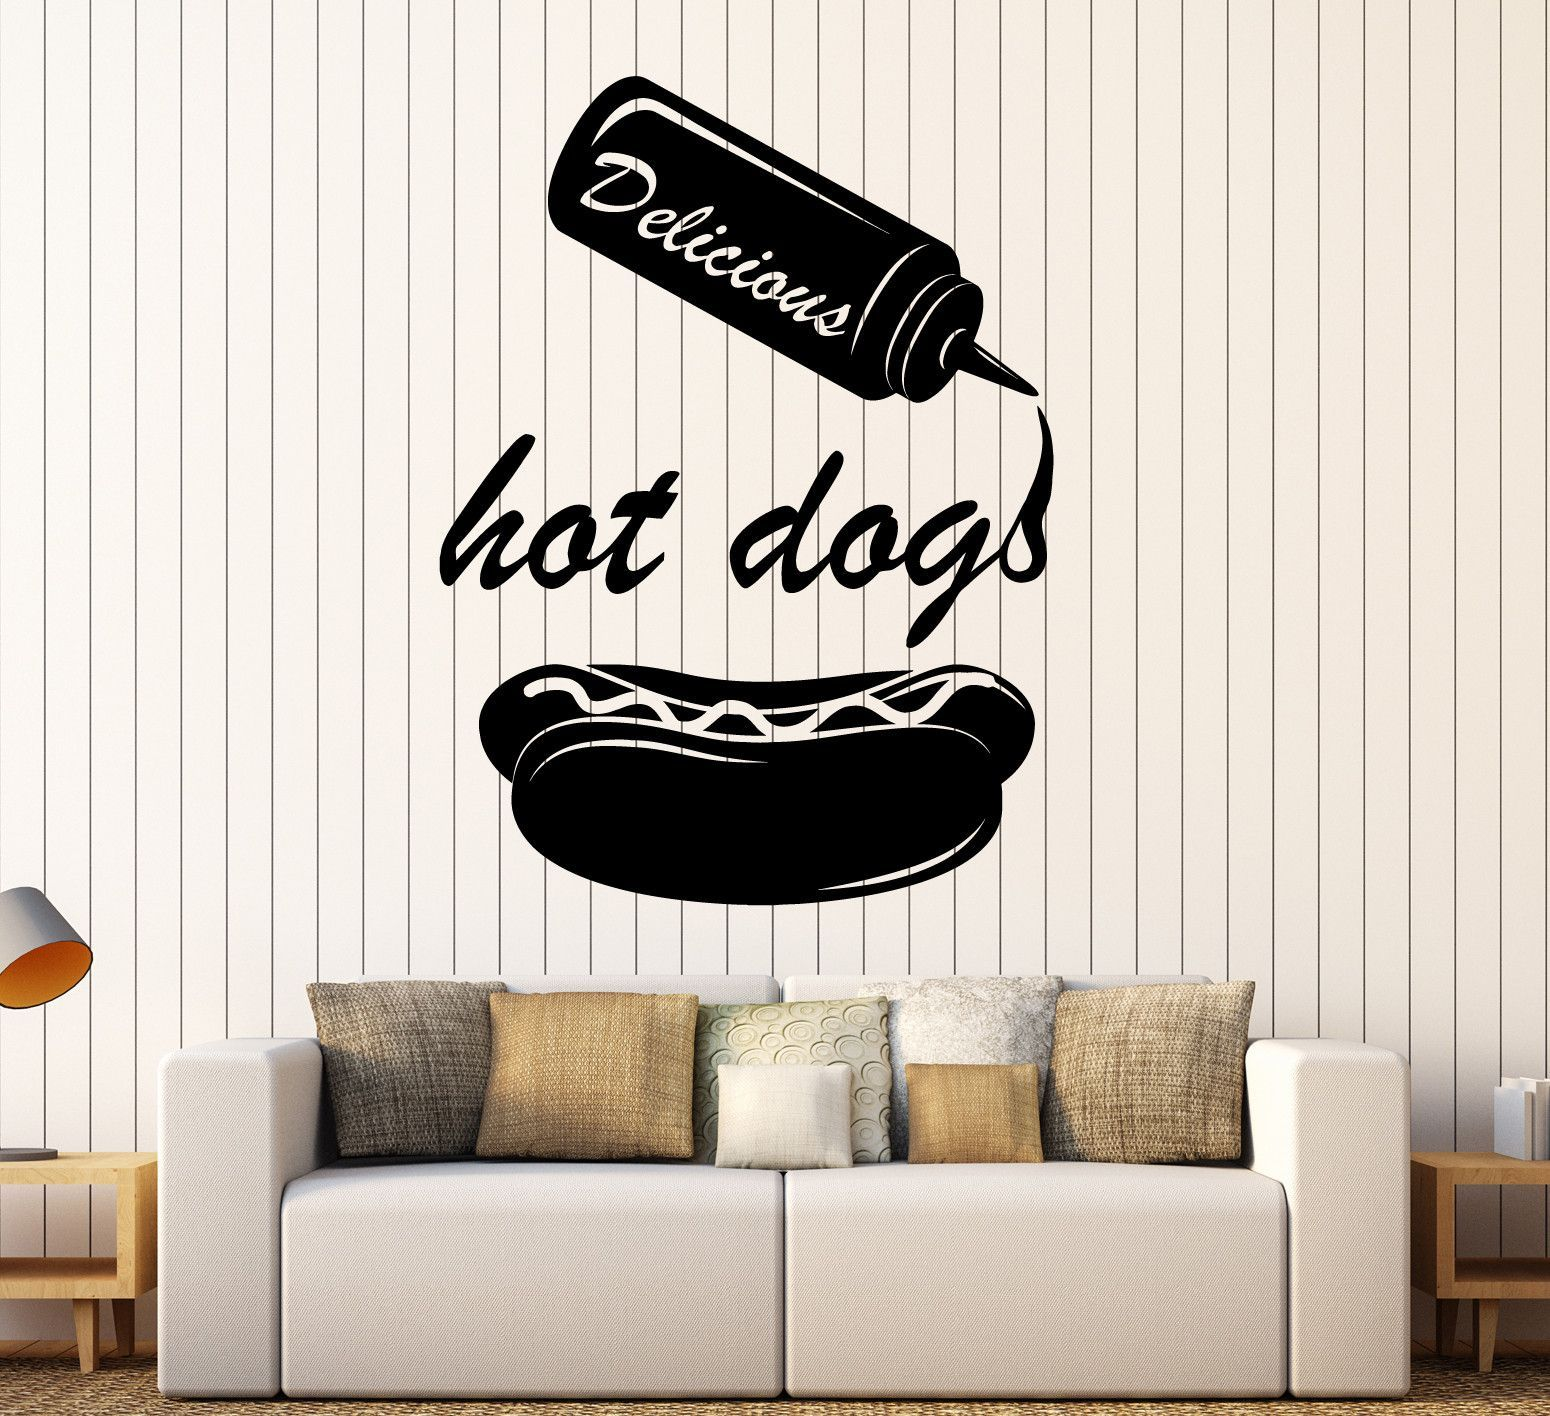 Vinyl Wall Decal Hot Dog Food Truck Fast Food Cooking